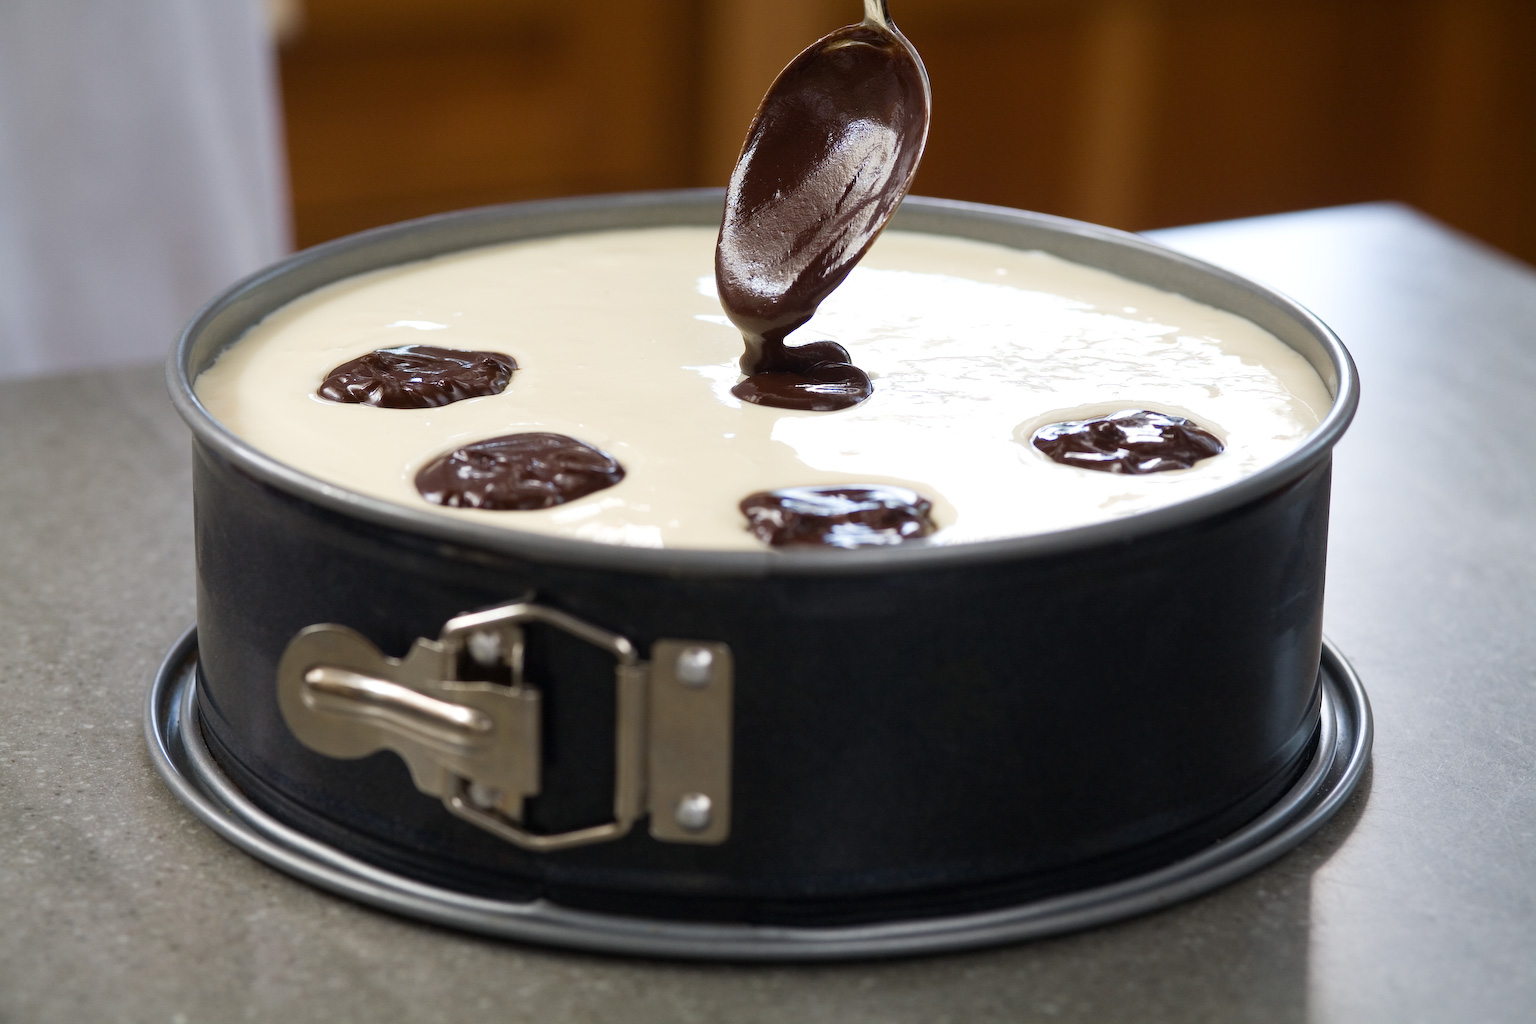 Drop spoonfuls of the chocolate randomly over the top of the batter ...